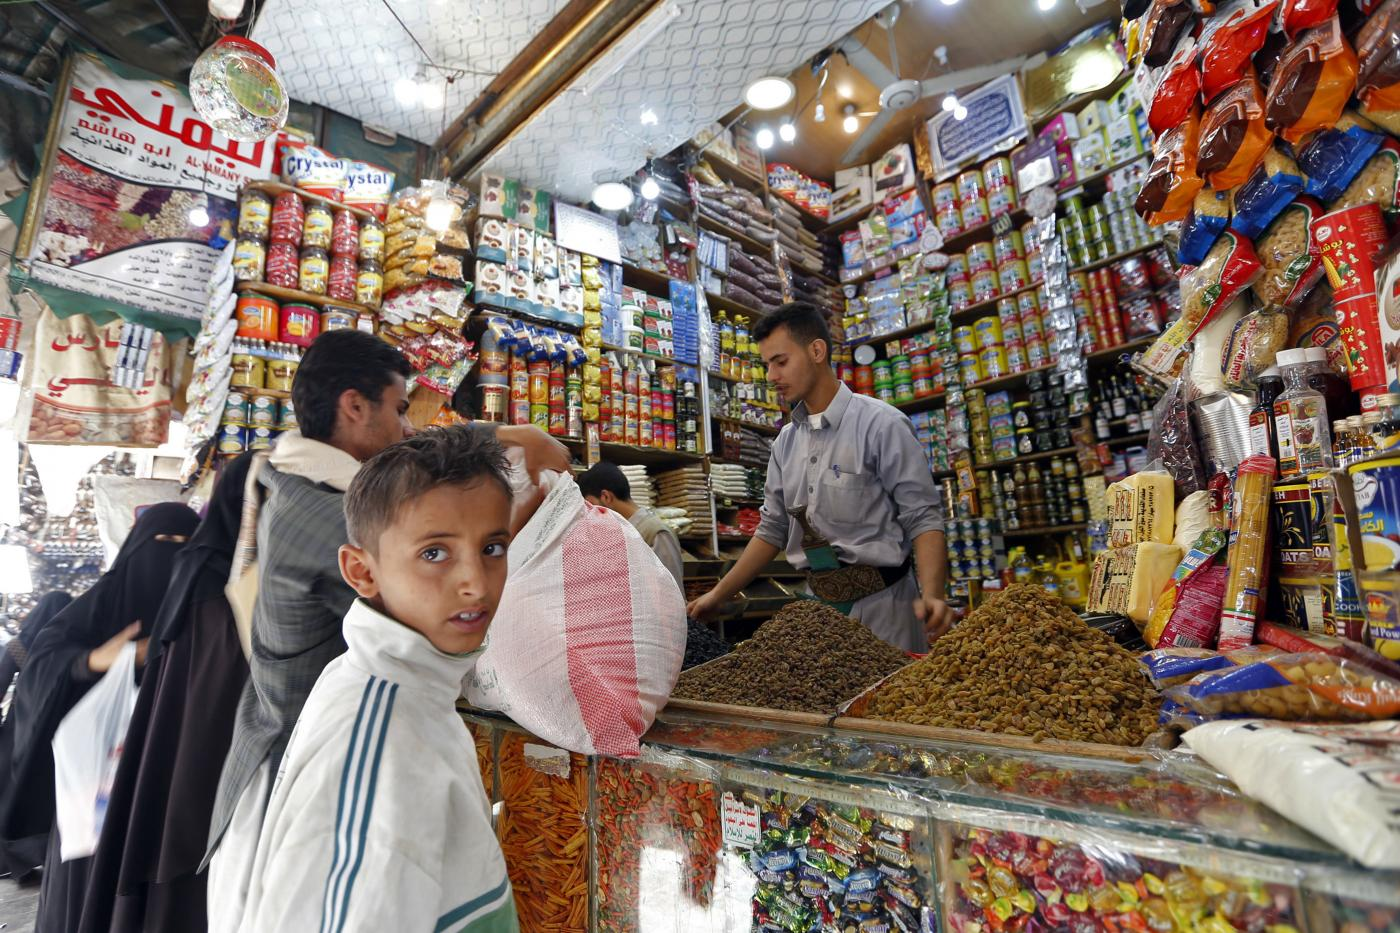 In Sanaa, Yemenis struggle to find politically palatable food to break the fast